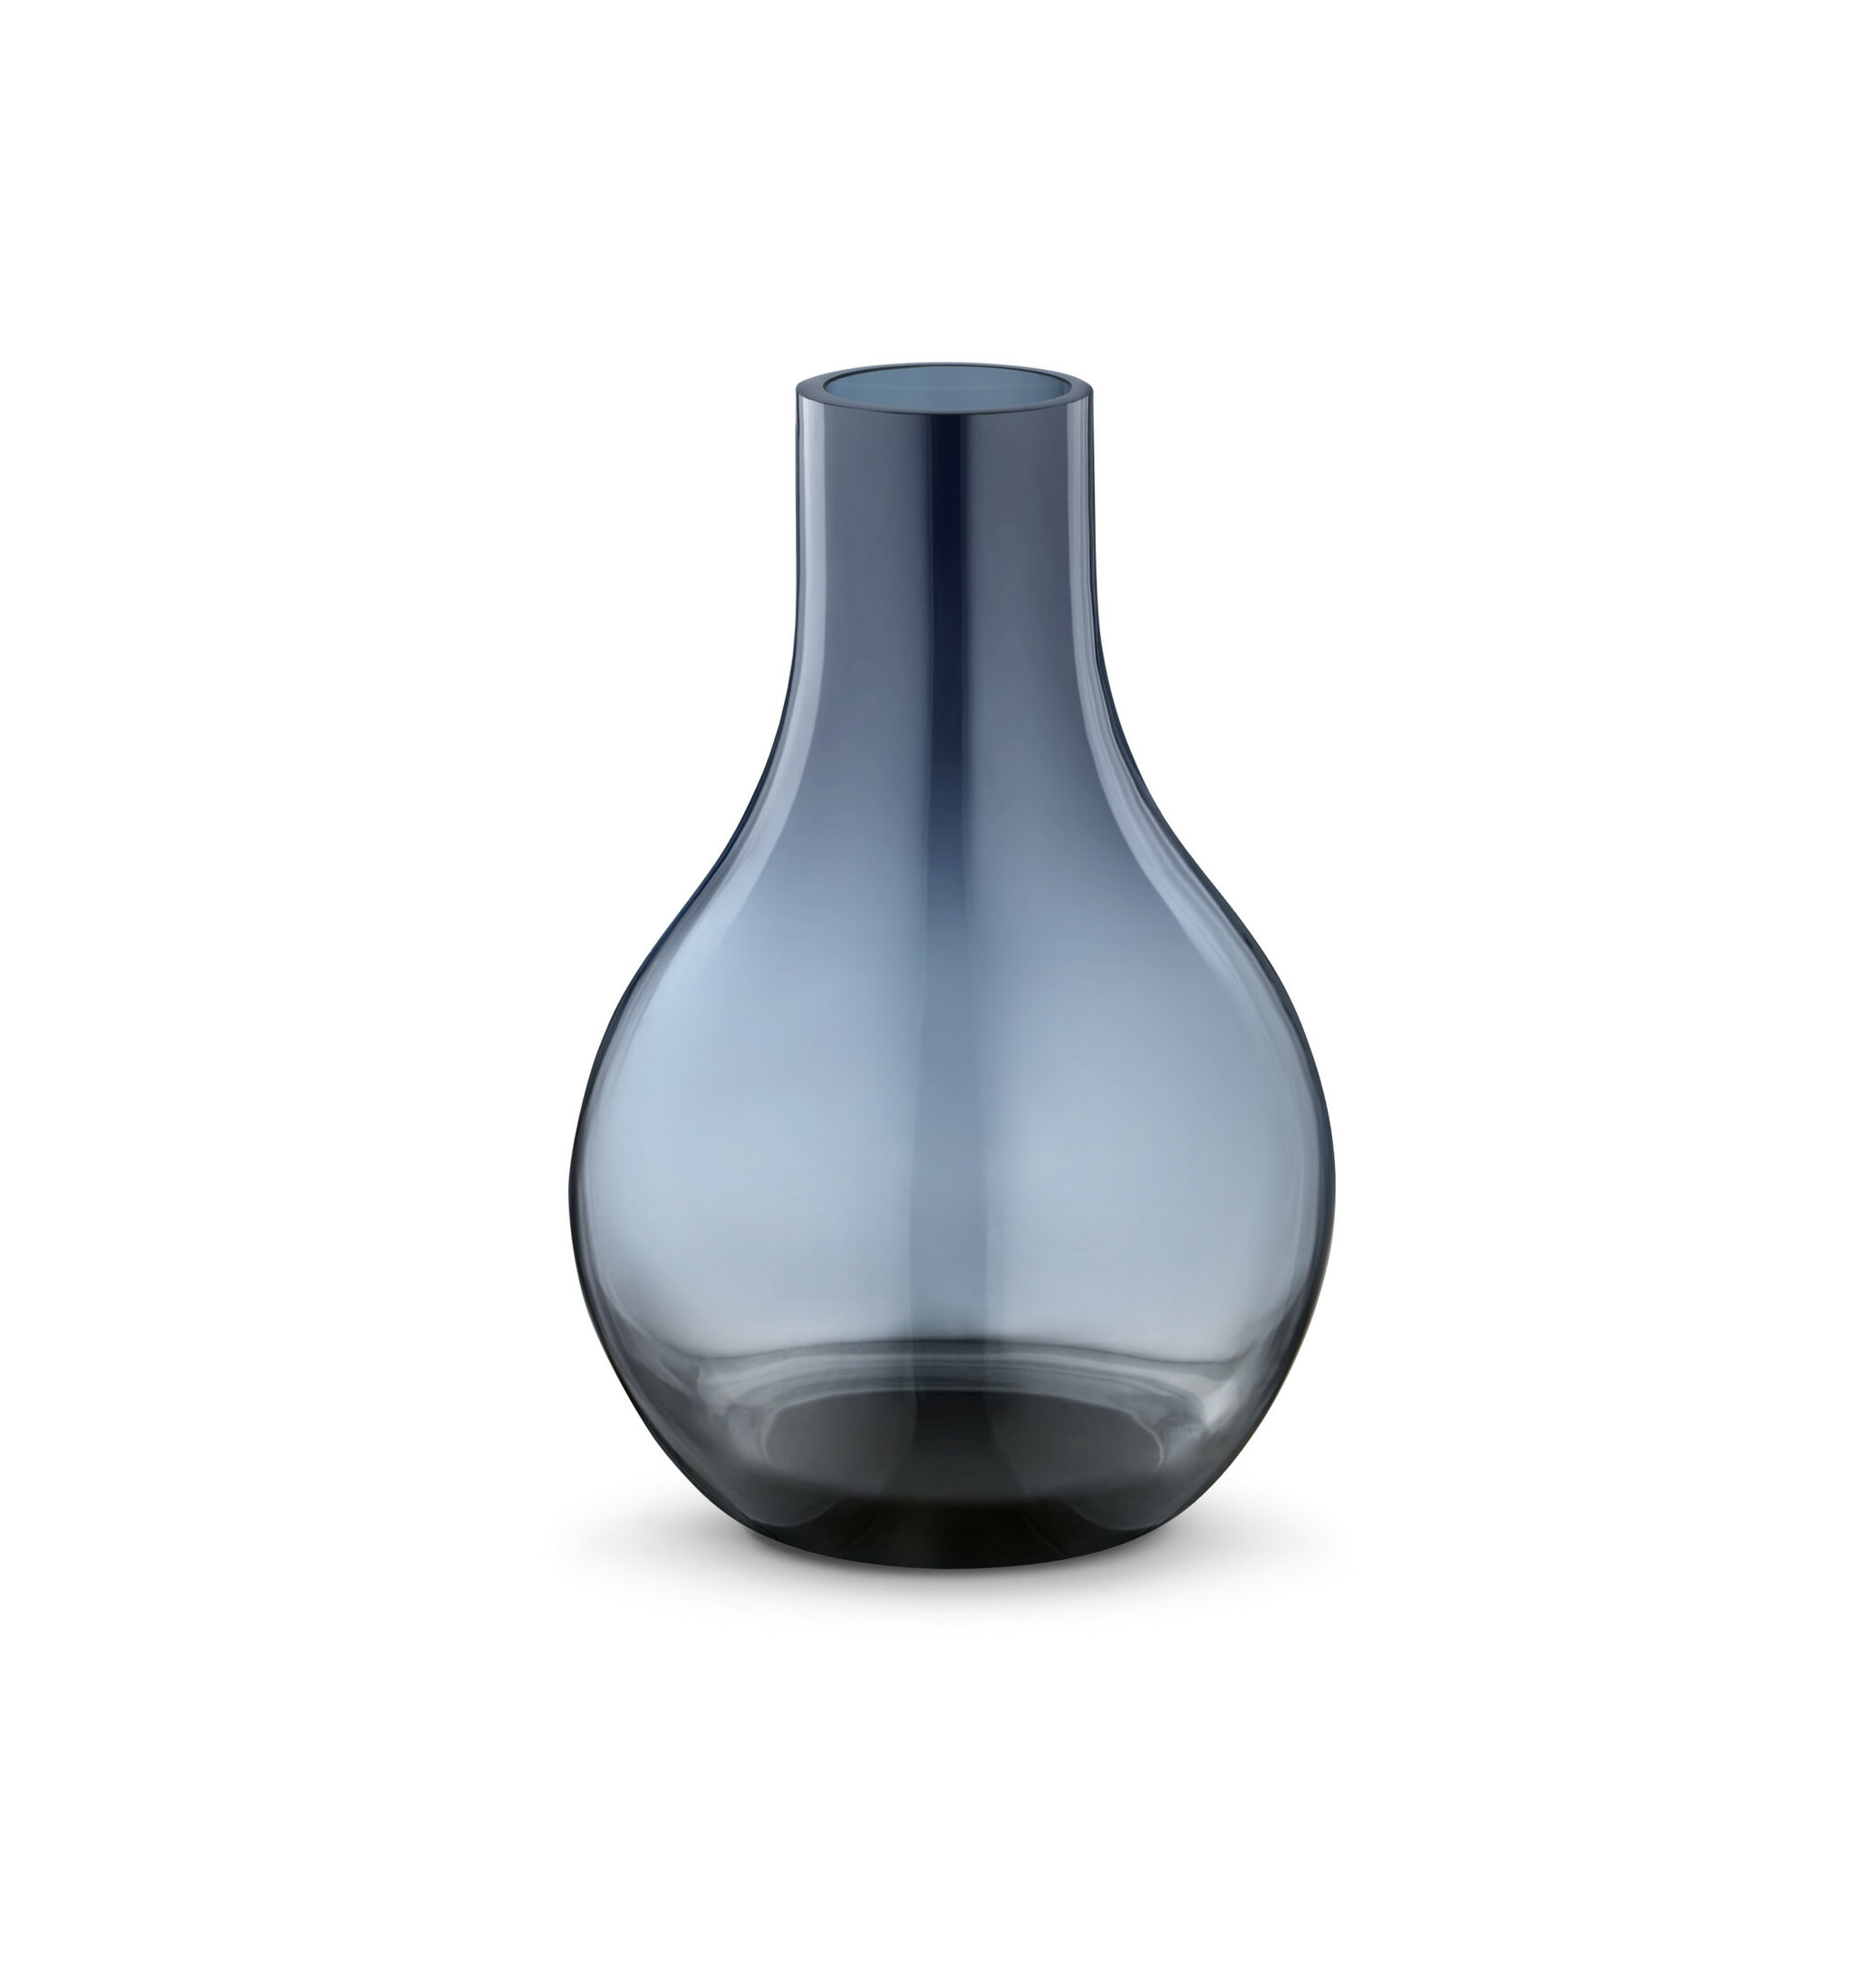 Cafu Blue 5 83 Indoor Outdoor Glass Table Vase Allmodern